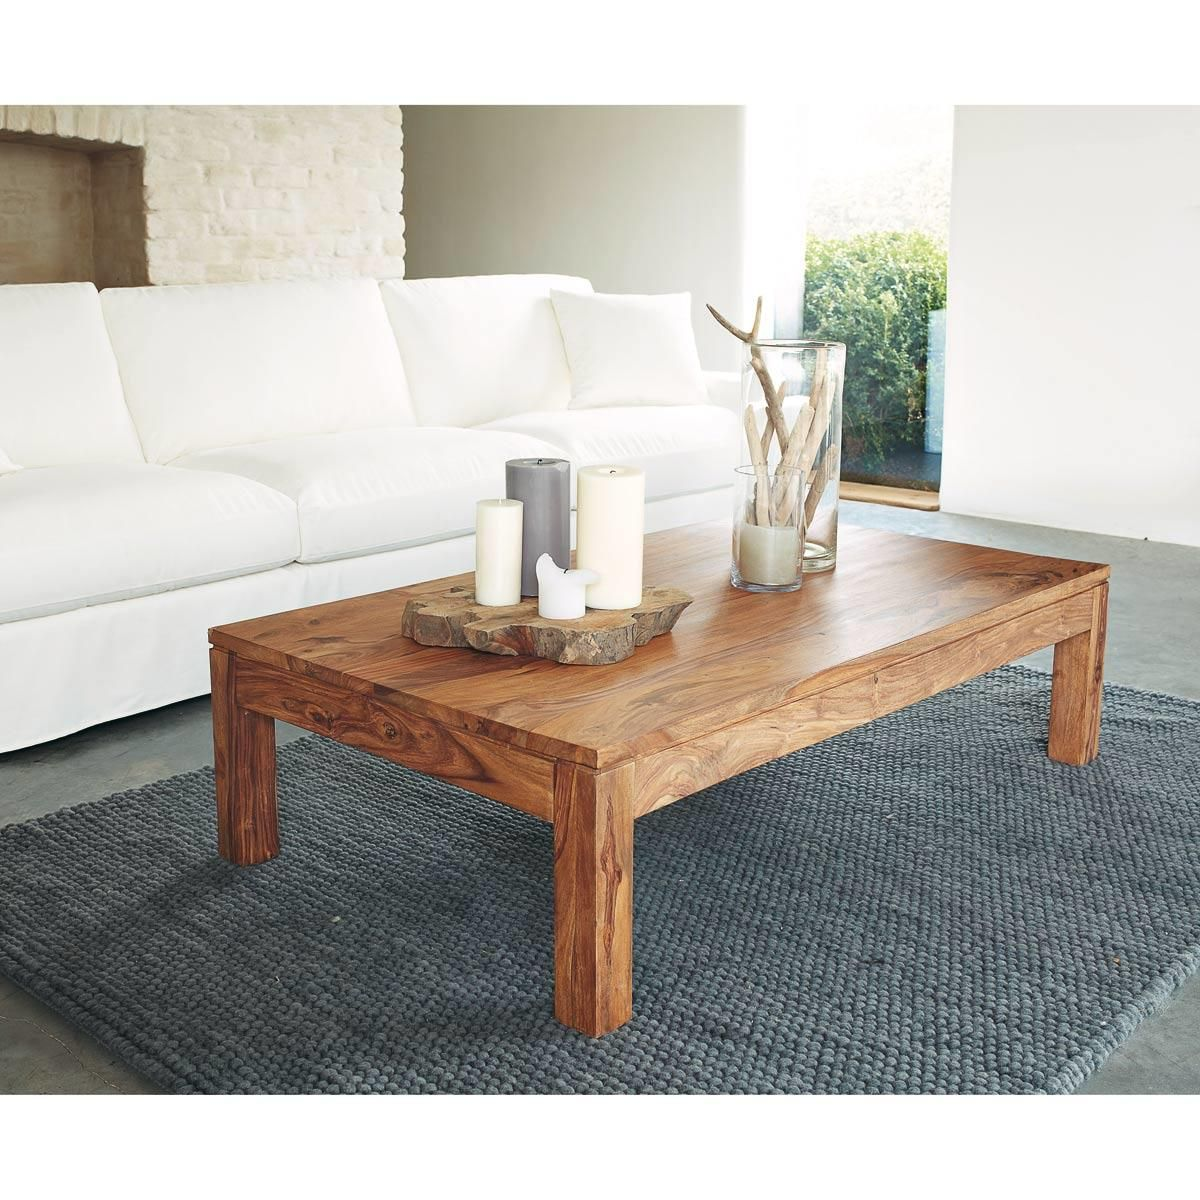 Table Basse Sheesham Table Basse En Sheesham Massif Salon Table Home Living